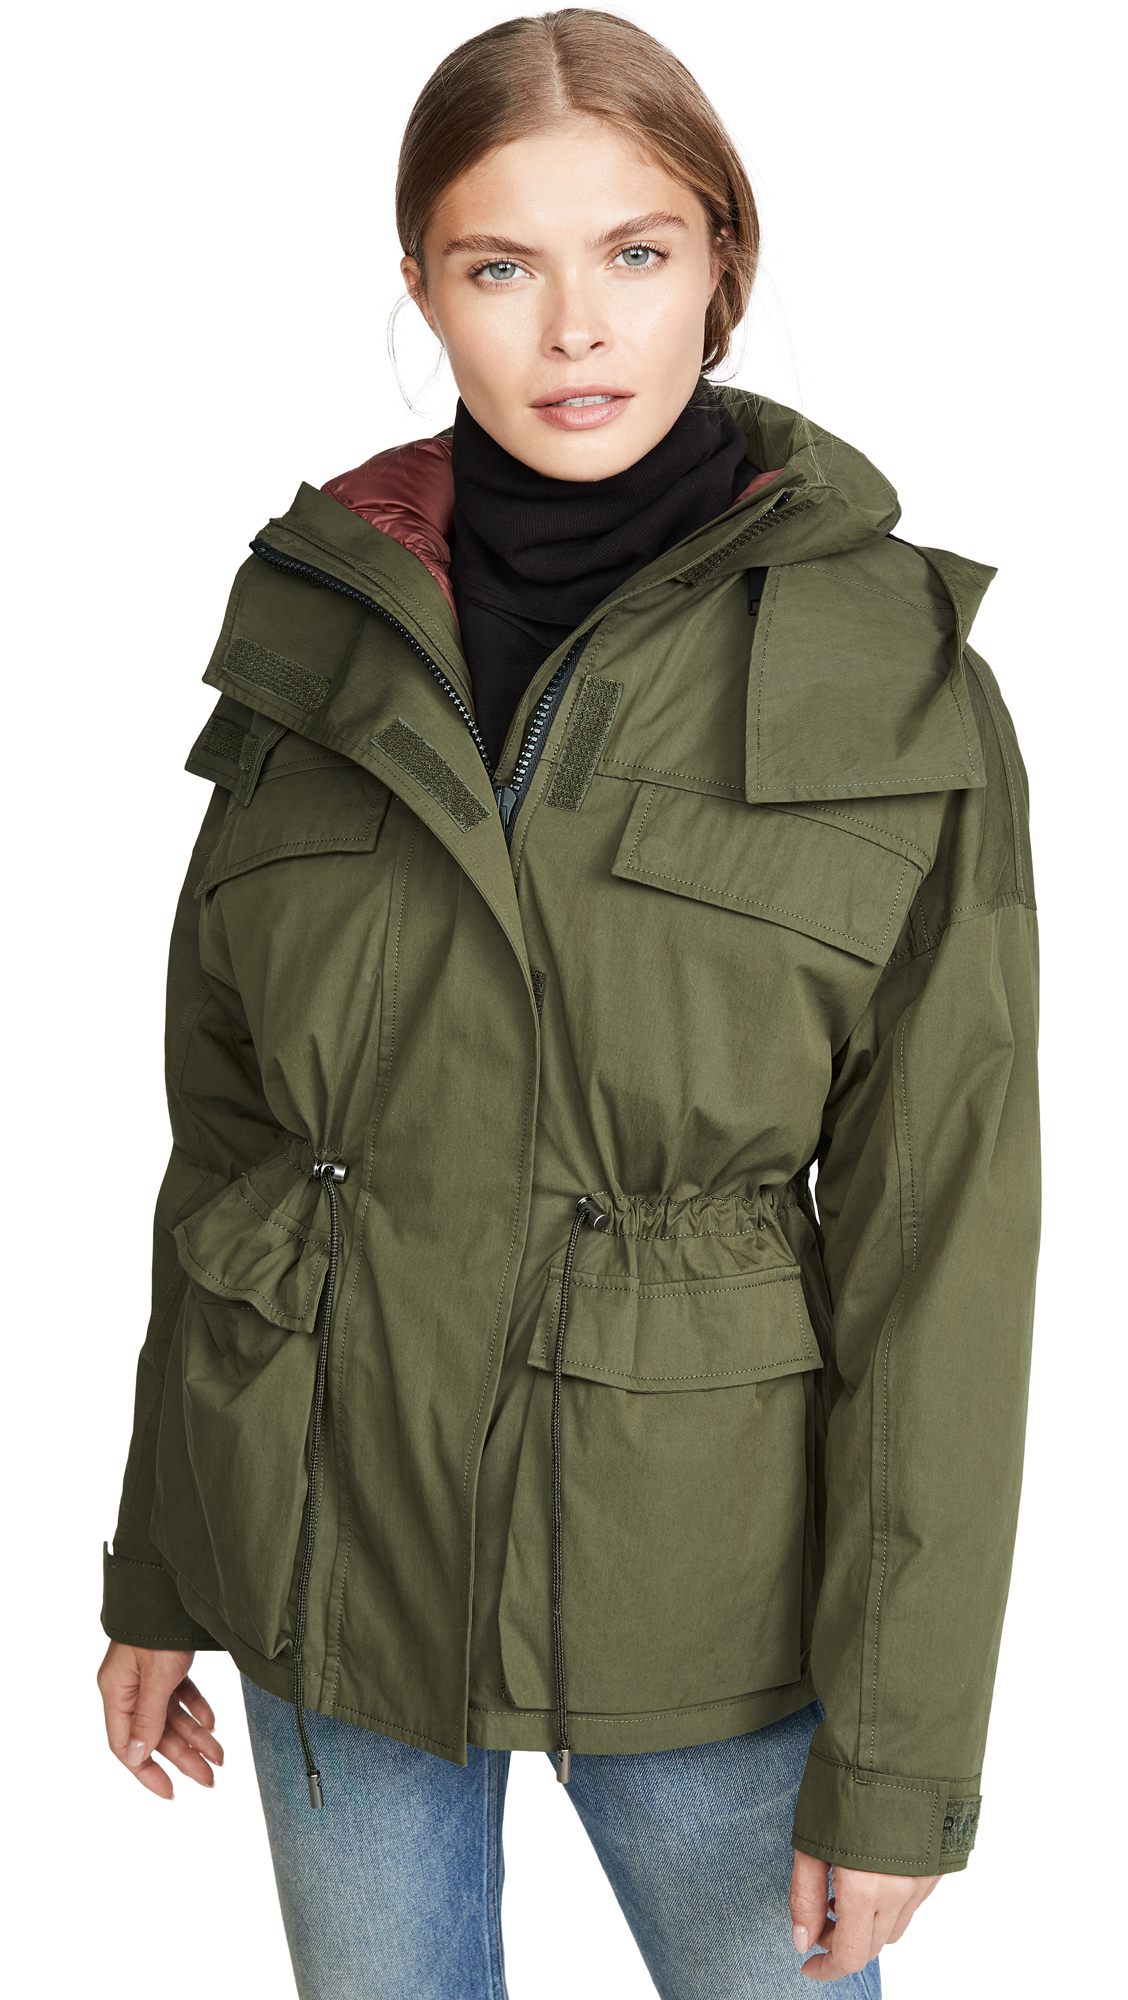 Buy Army By Yves Salomon online - photo of Army By Yves Salomon Bachette Nylon Lined Parka